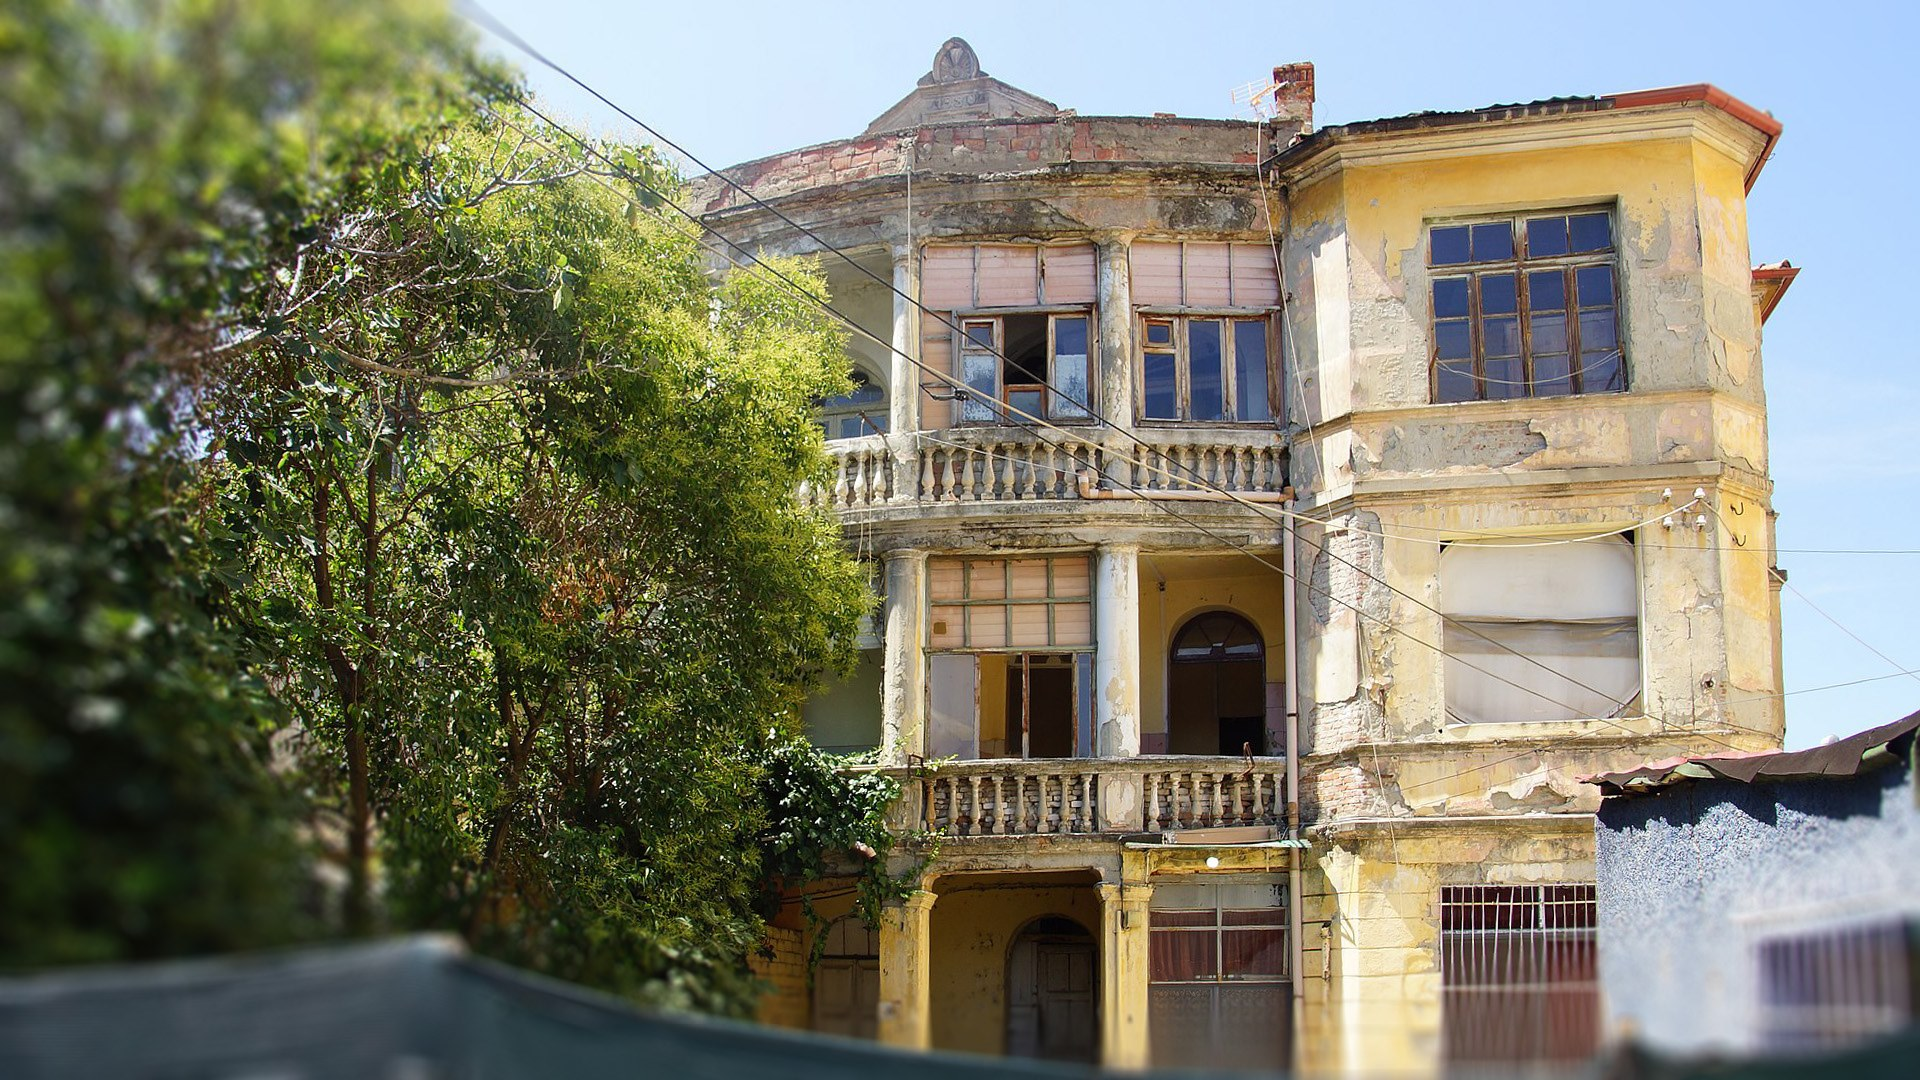 Another Historic Villa Demolished to Make Way for Development